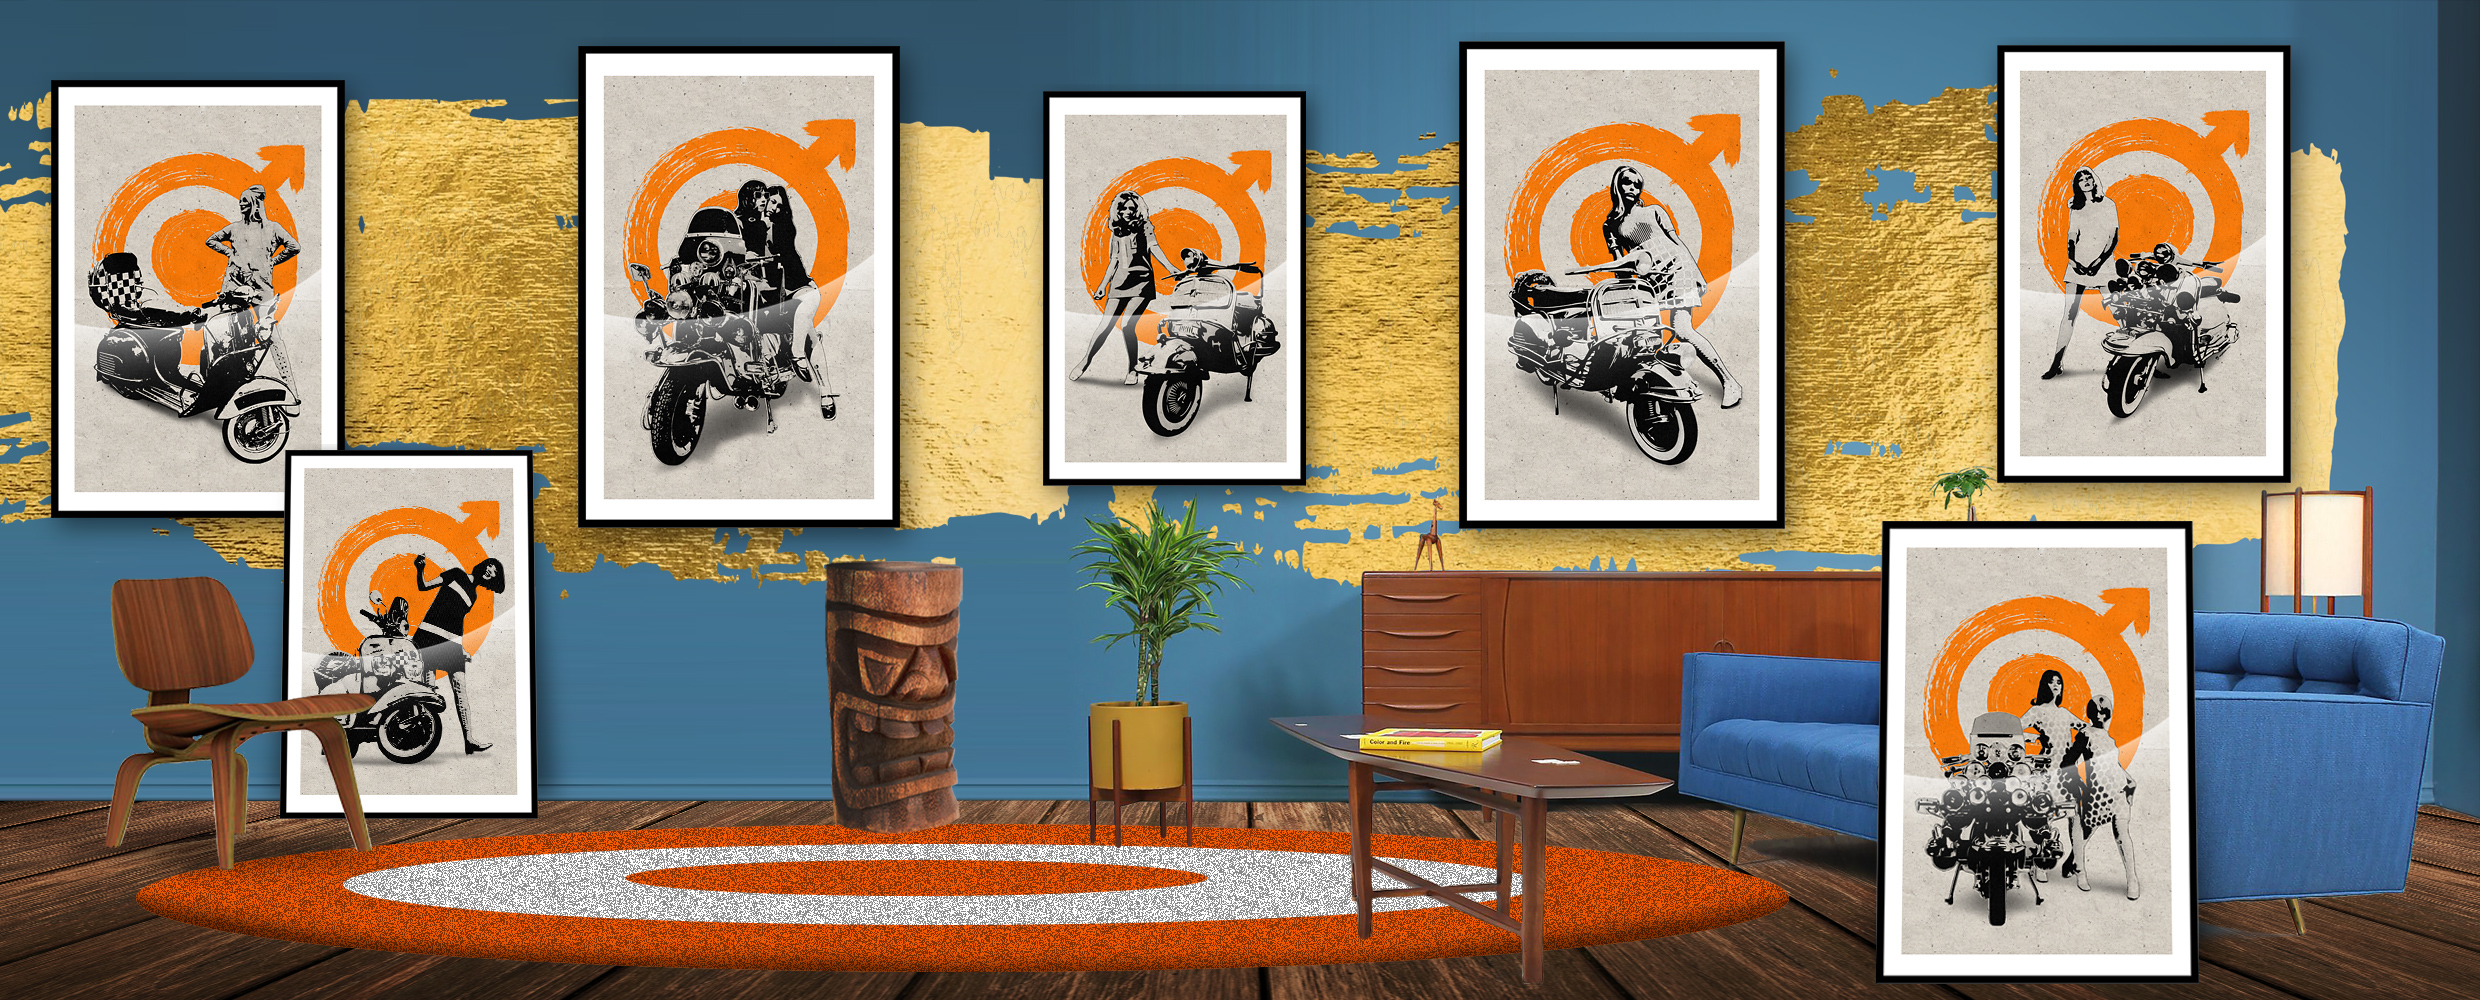 go-mods-artprints-2021-by-mephistodesign